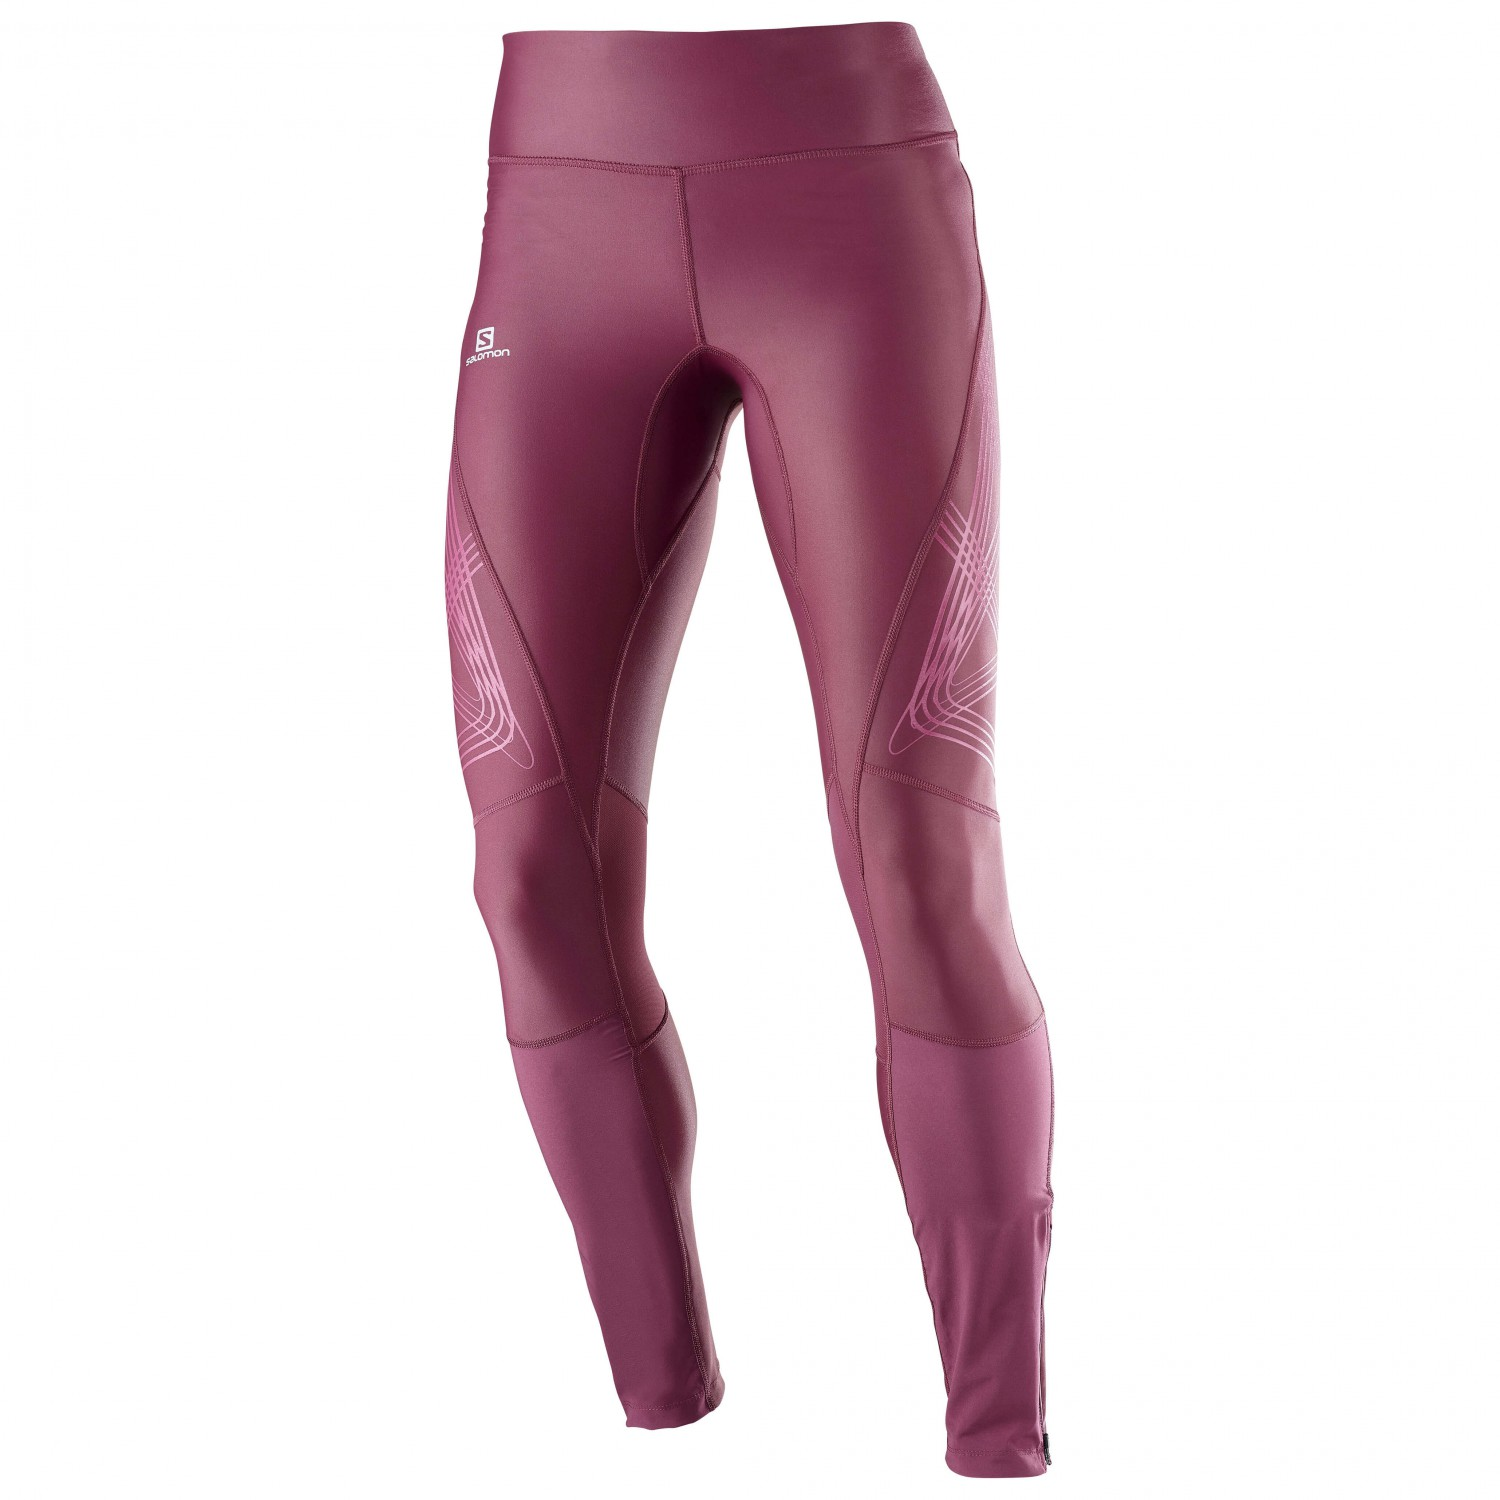 Salomon Intensity Long Tight Laufhose Damen online kaufen